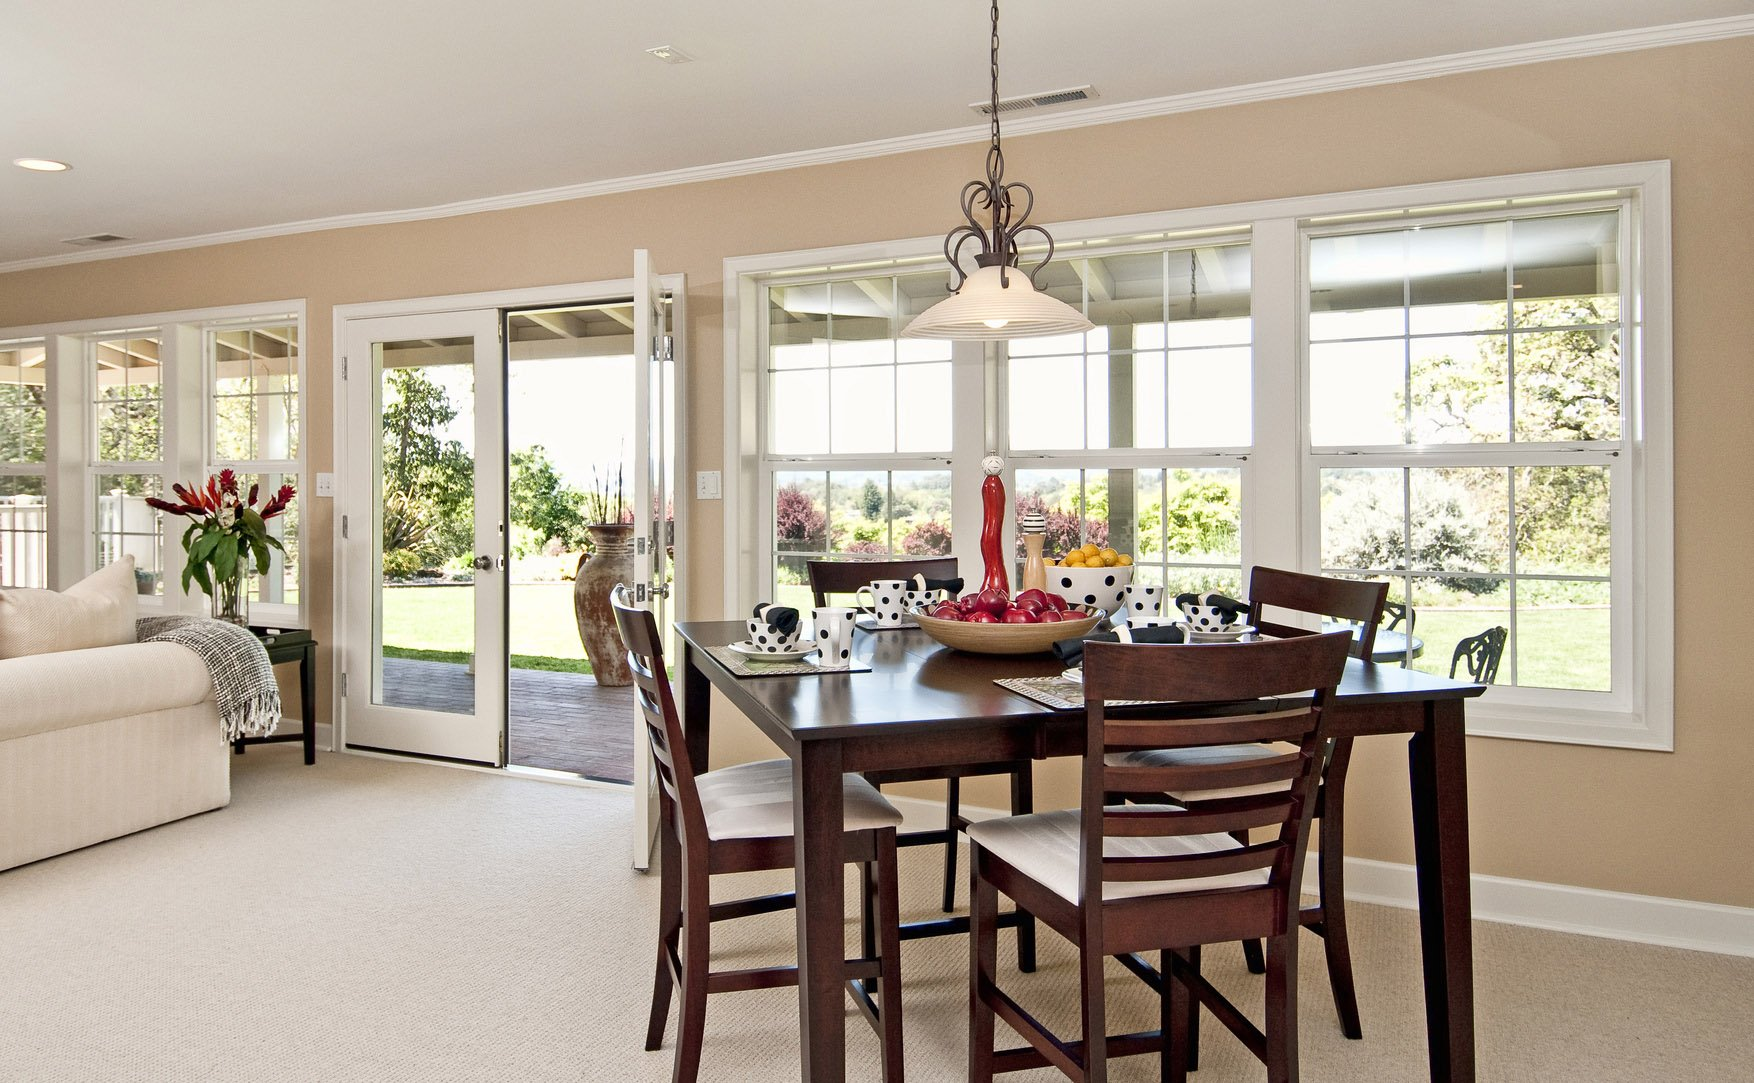 Dining area - Richmond Exteriors